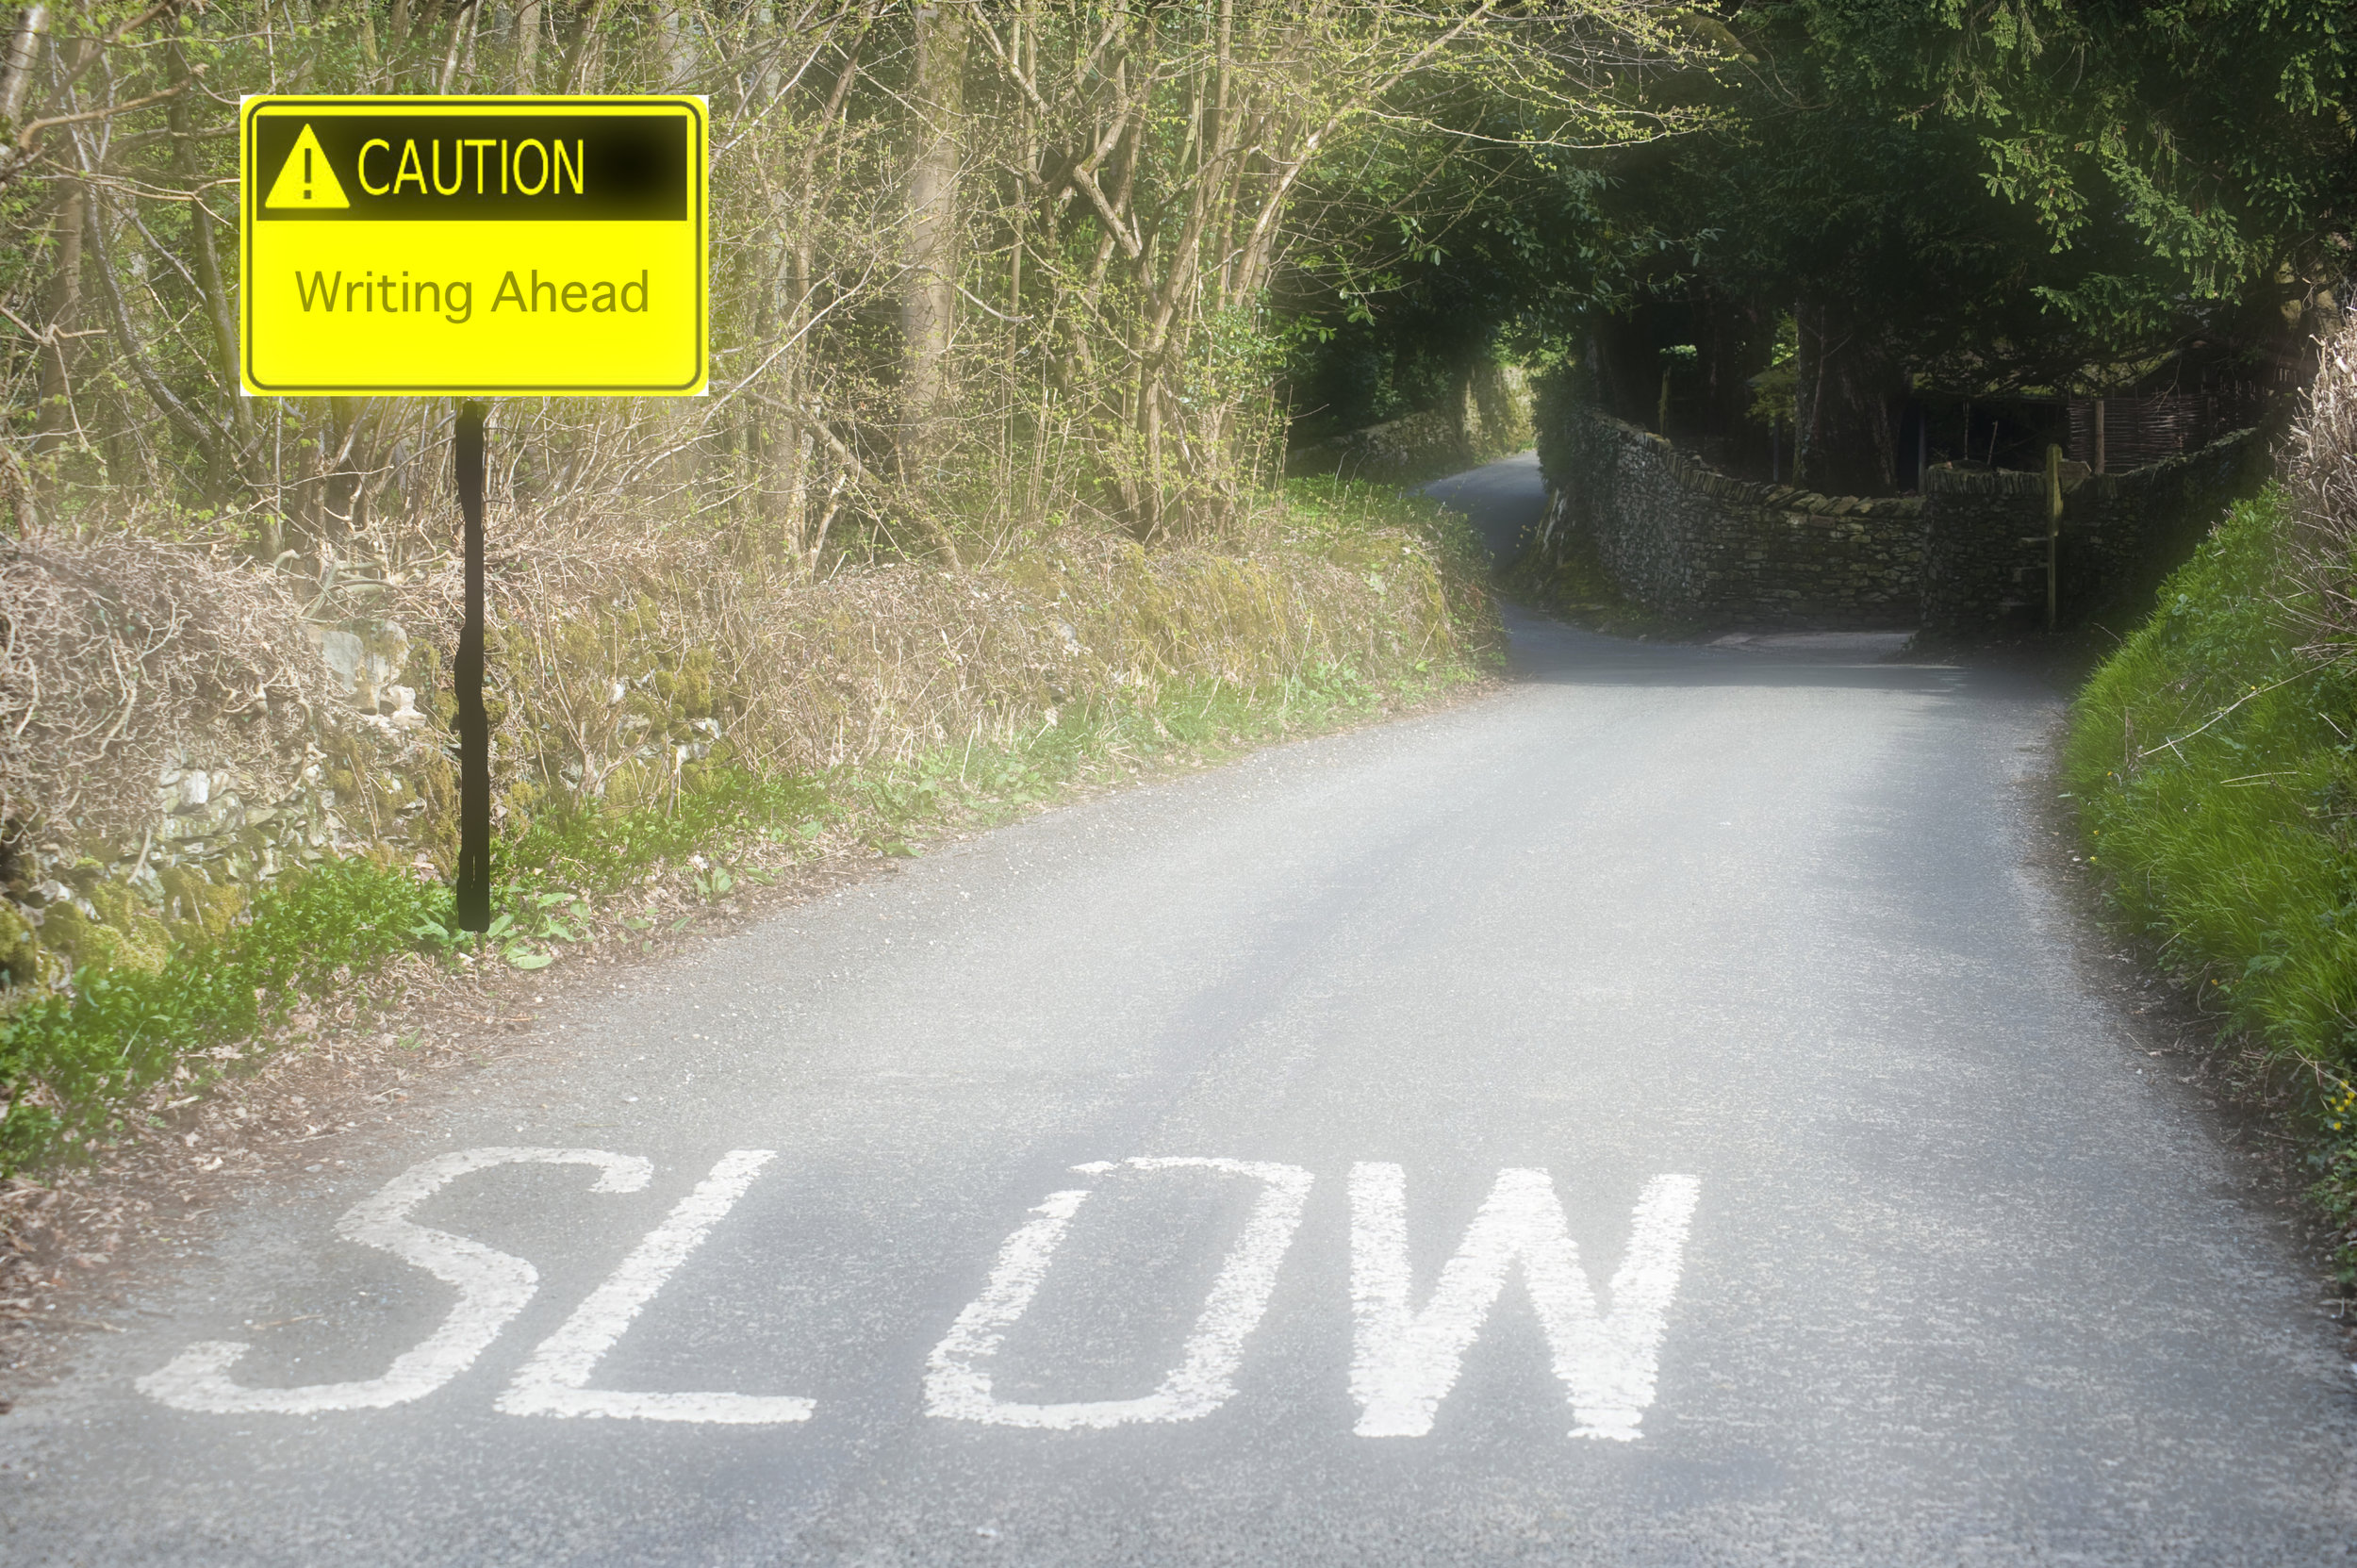 Painted caution on road to slow down